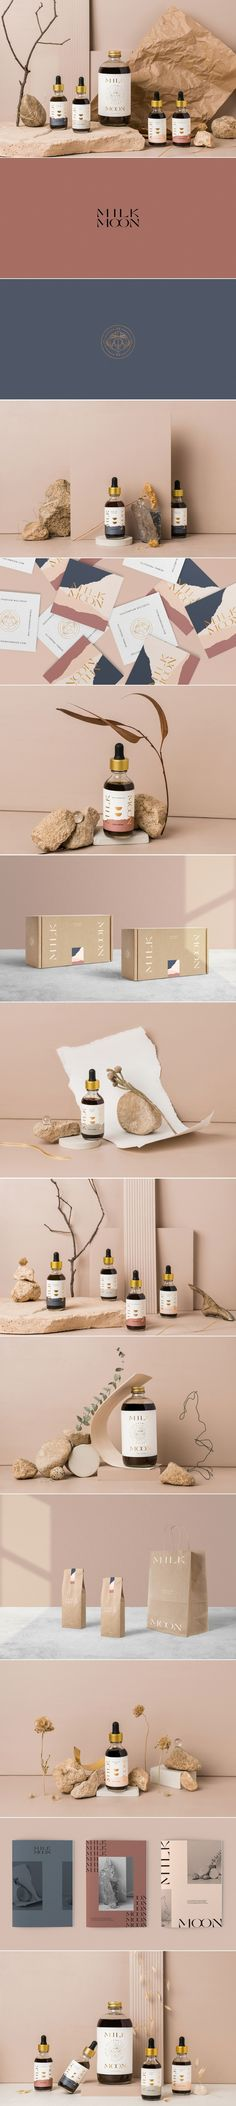 Milk Moon herbal postpartum wellness product brand design and package design by Kati Forner | Fivestar Branding Agency – Design and Branding Agency & Curated Inspiration Gallery #wellness #postpartum #branding #brandingdesign #brandinginspiration #brandingagency #brand #branddesign #brandidentity #identitydesign #packaging #packagingdesign #packaginginspiration #packagingideas #package #packagedesign #businesscarddesign #printdesign #patterndesign #logodesign #logos #typography #illustration